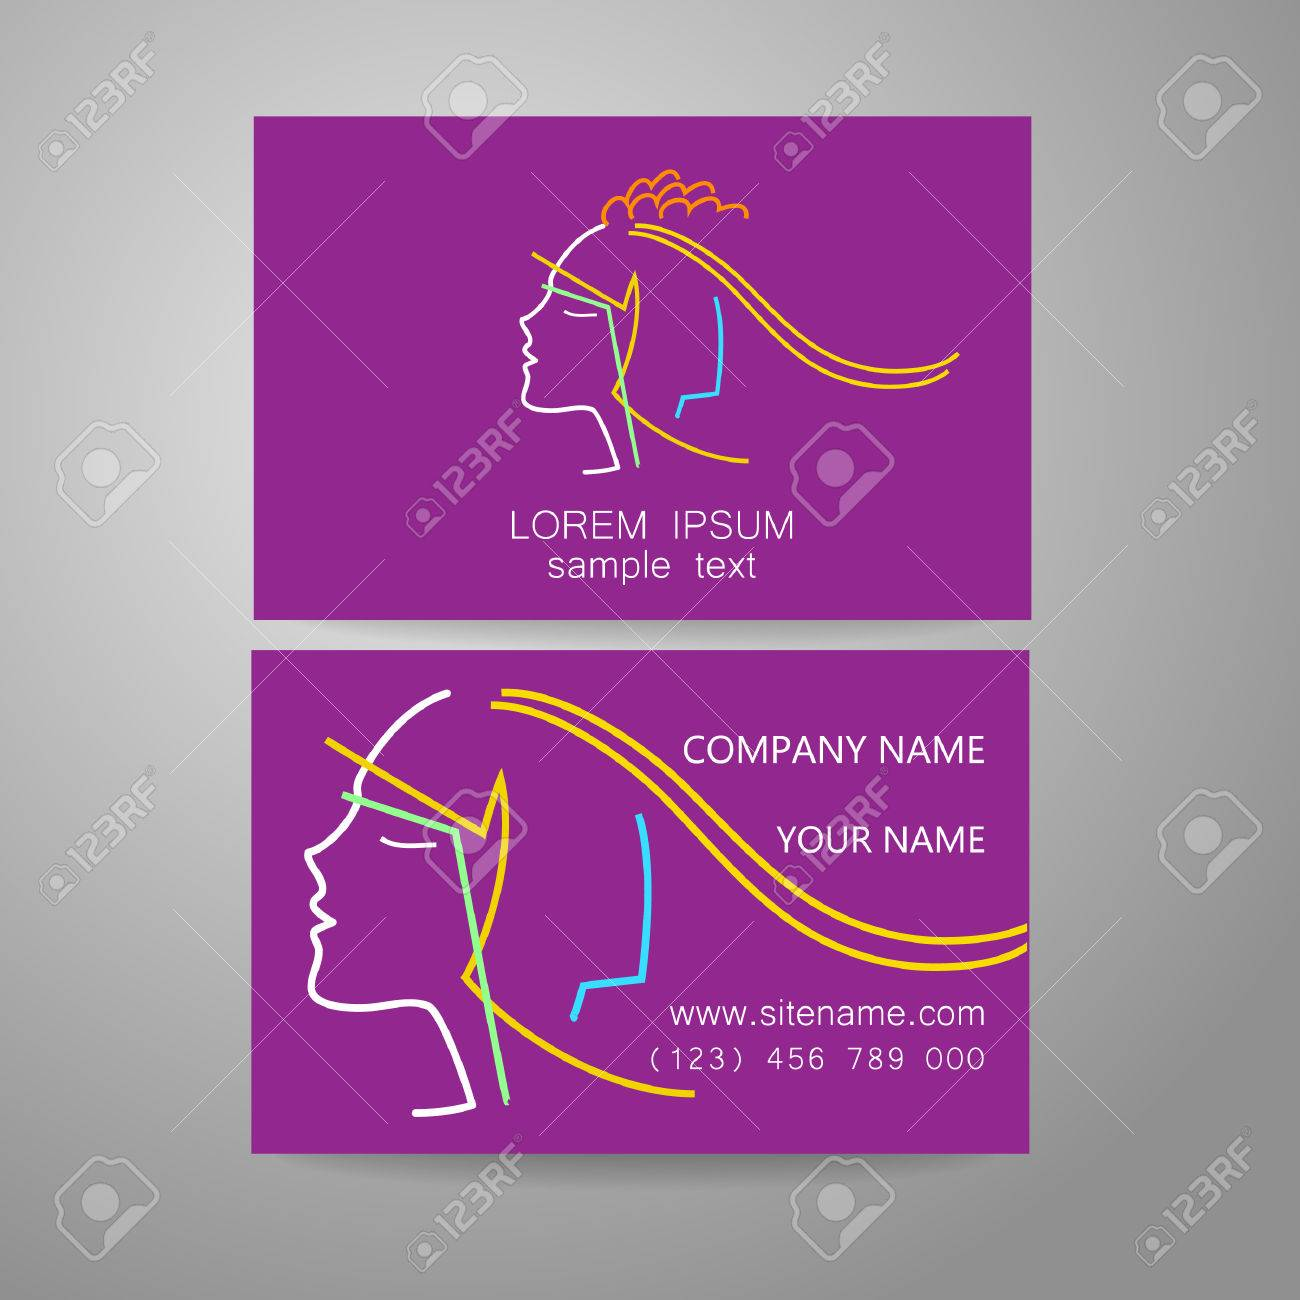 Hair salon hairdresser template logo branded business card hair salon hairdresser template logo branded business card hair stylist stock vector colourmoves